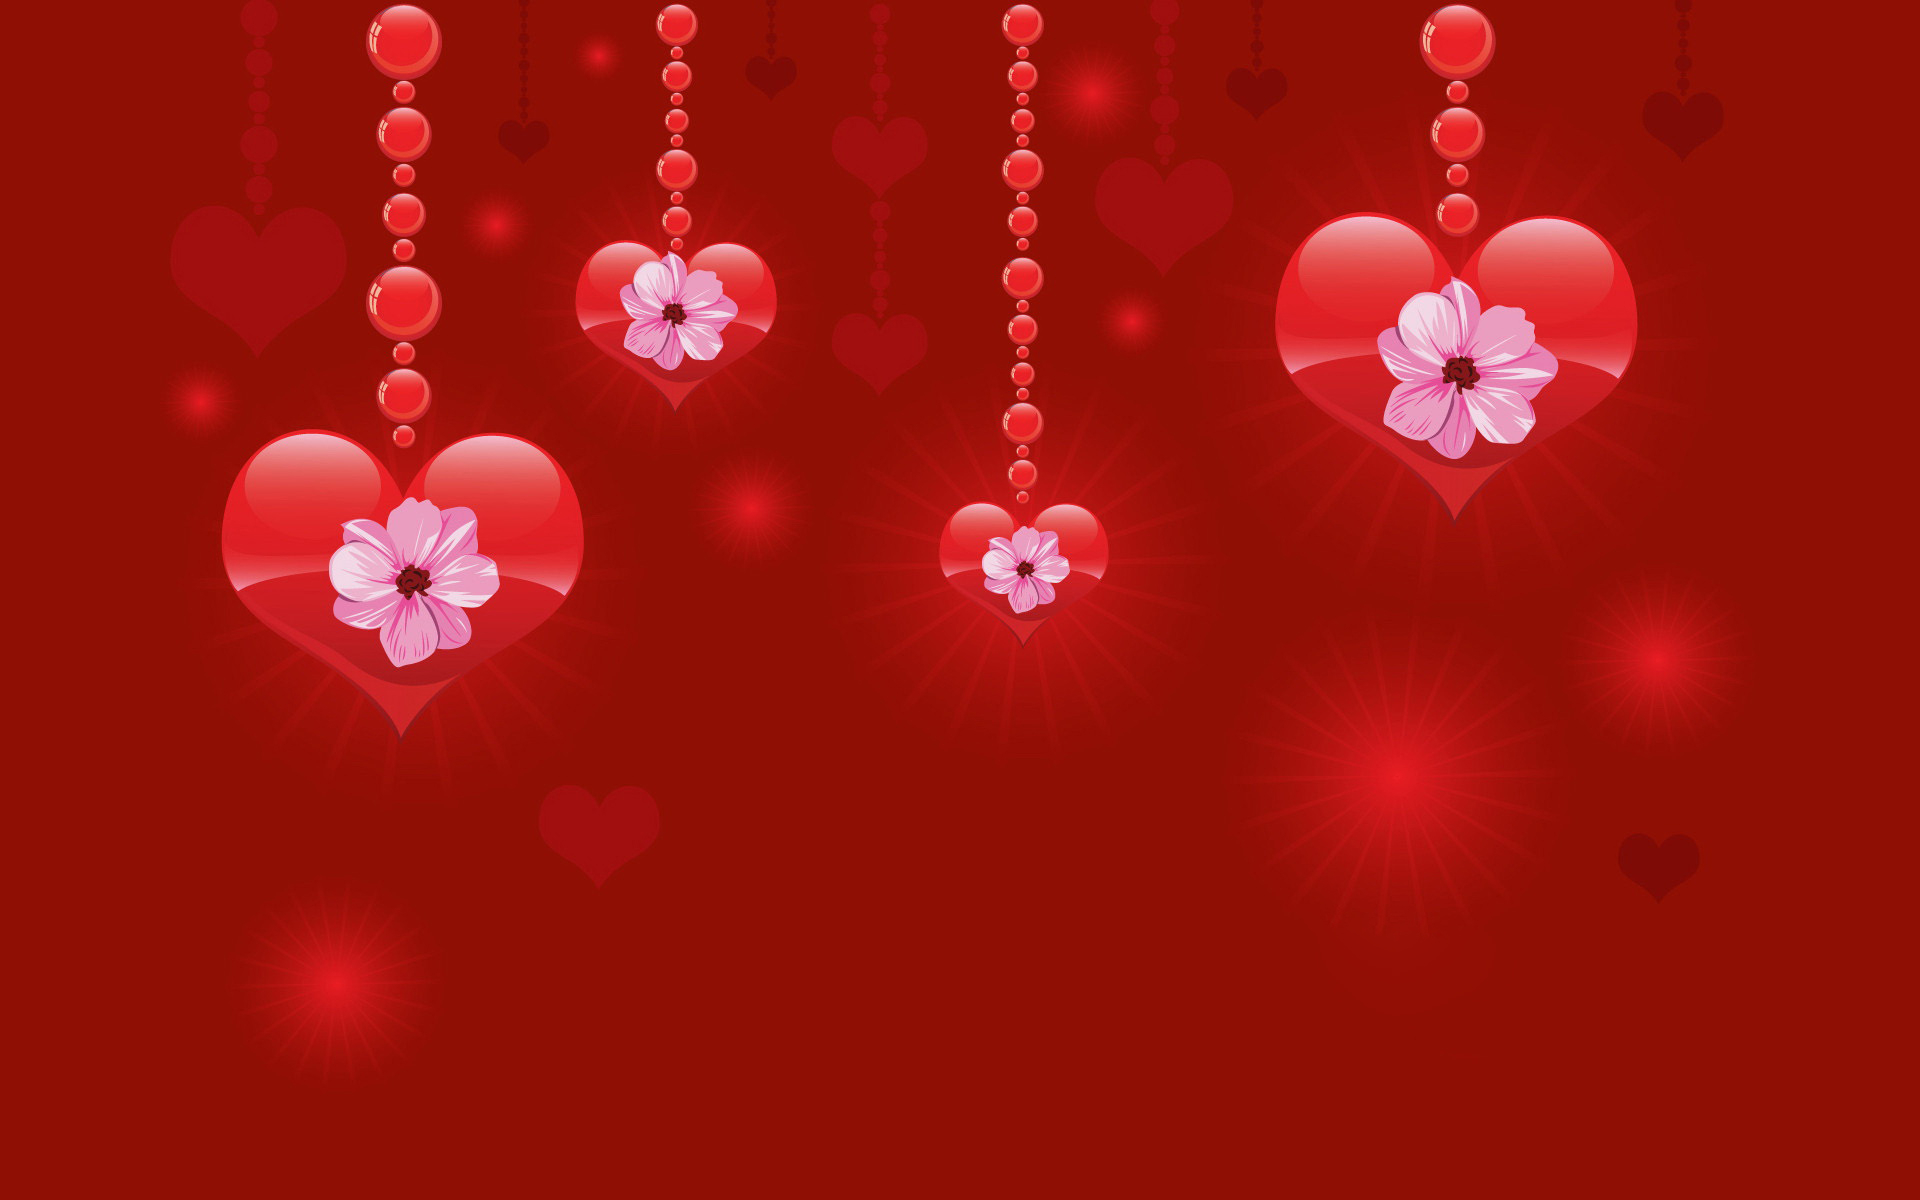 Heart at Valentines Day wallpapers and images - wallpapers, pictures ...